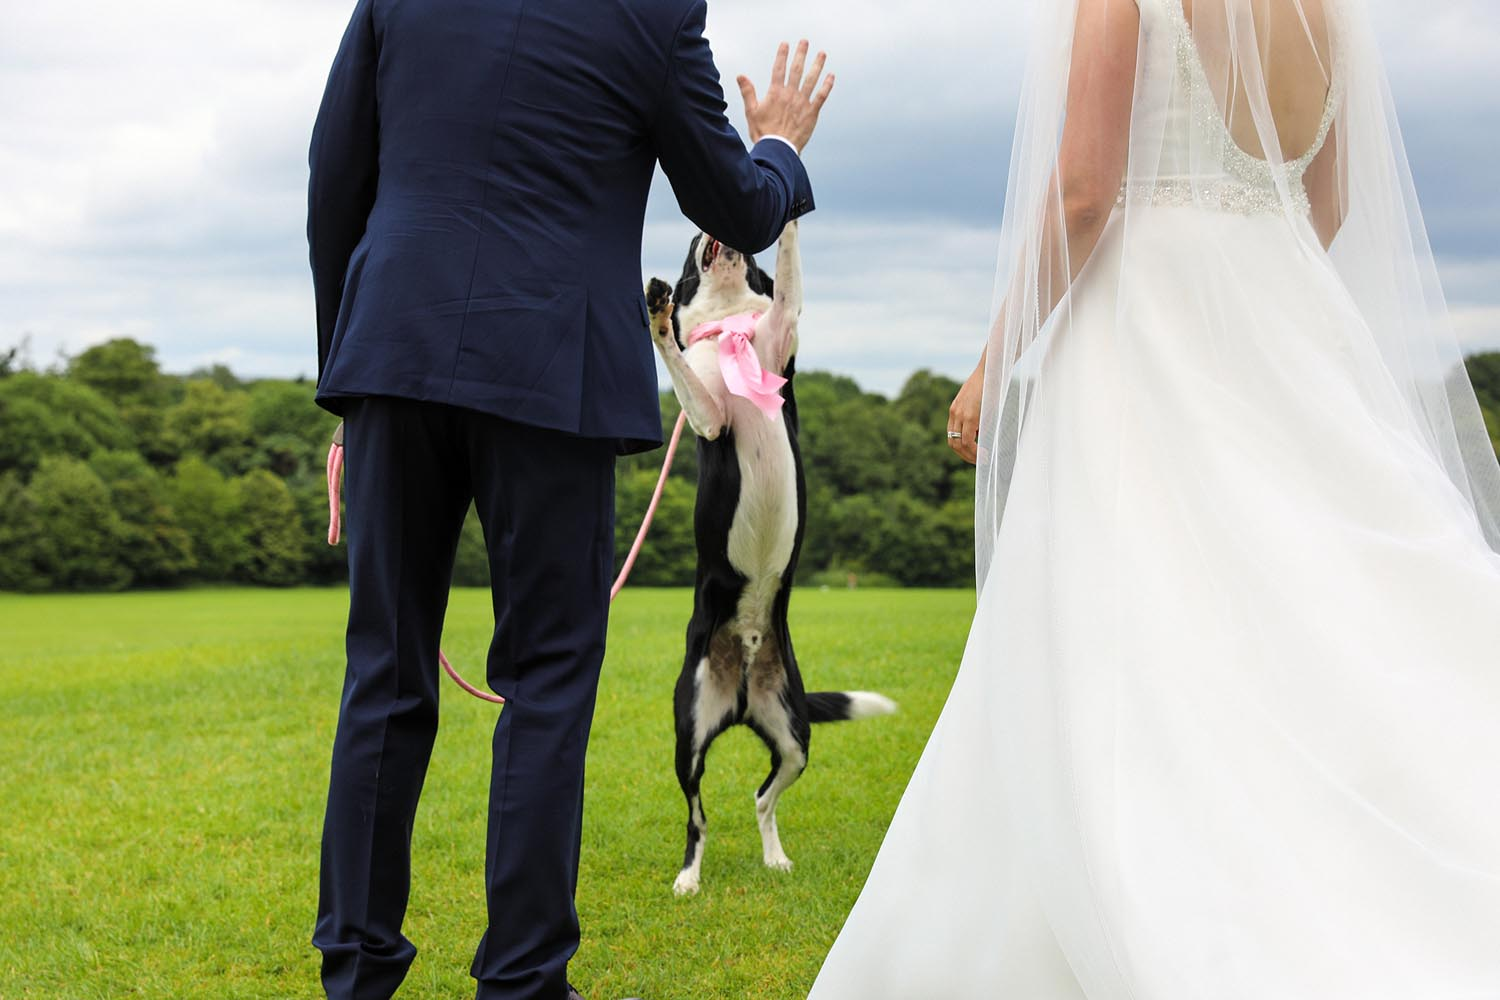 Playing with their dog on their wedding day